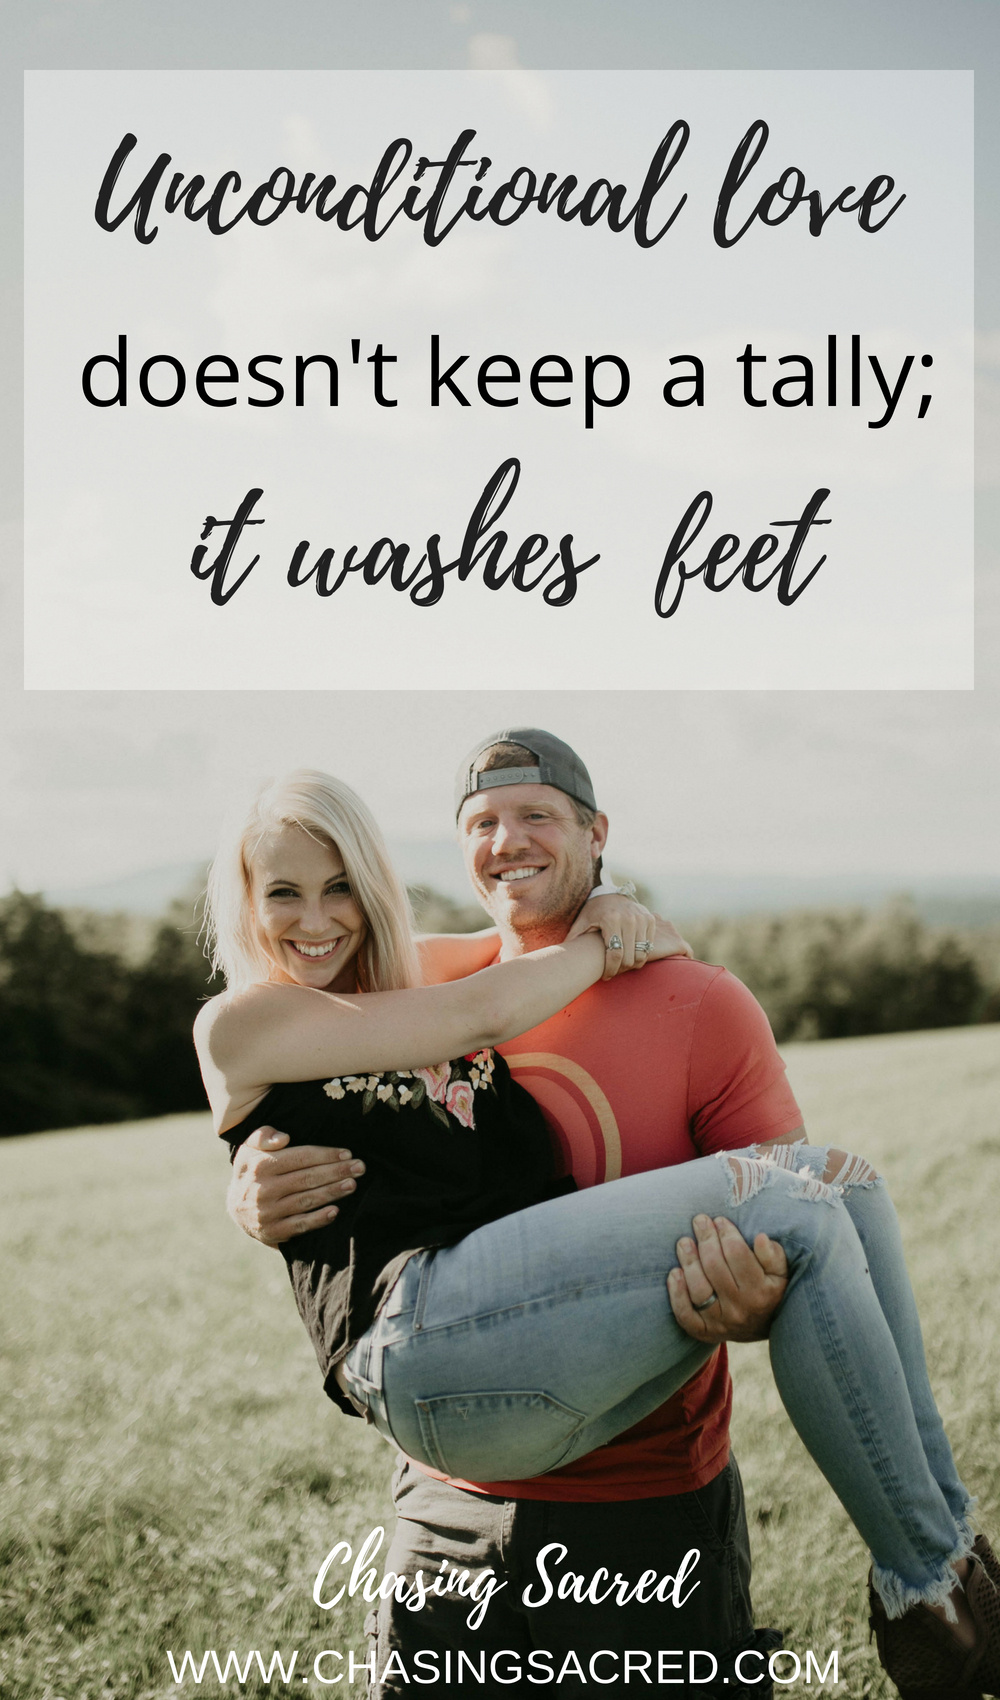 Unconditional love doesn't keep a talley; it washes feet.   Chasing Sacred